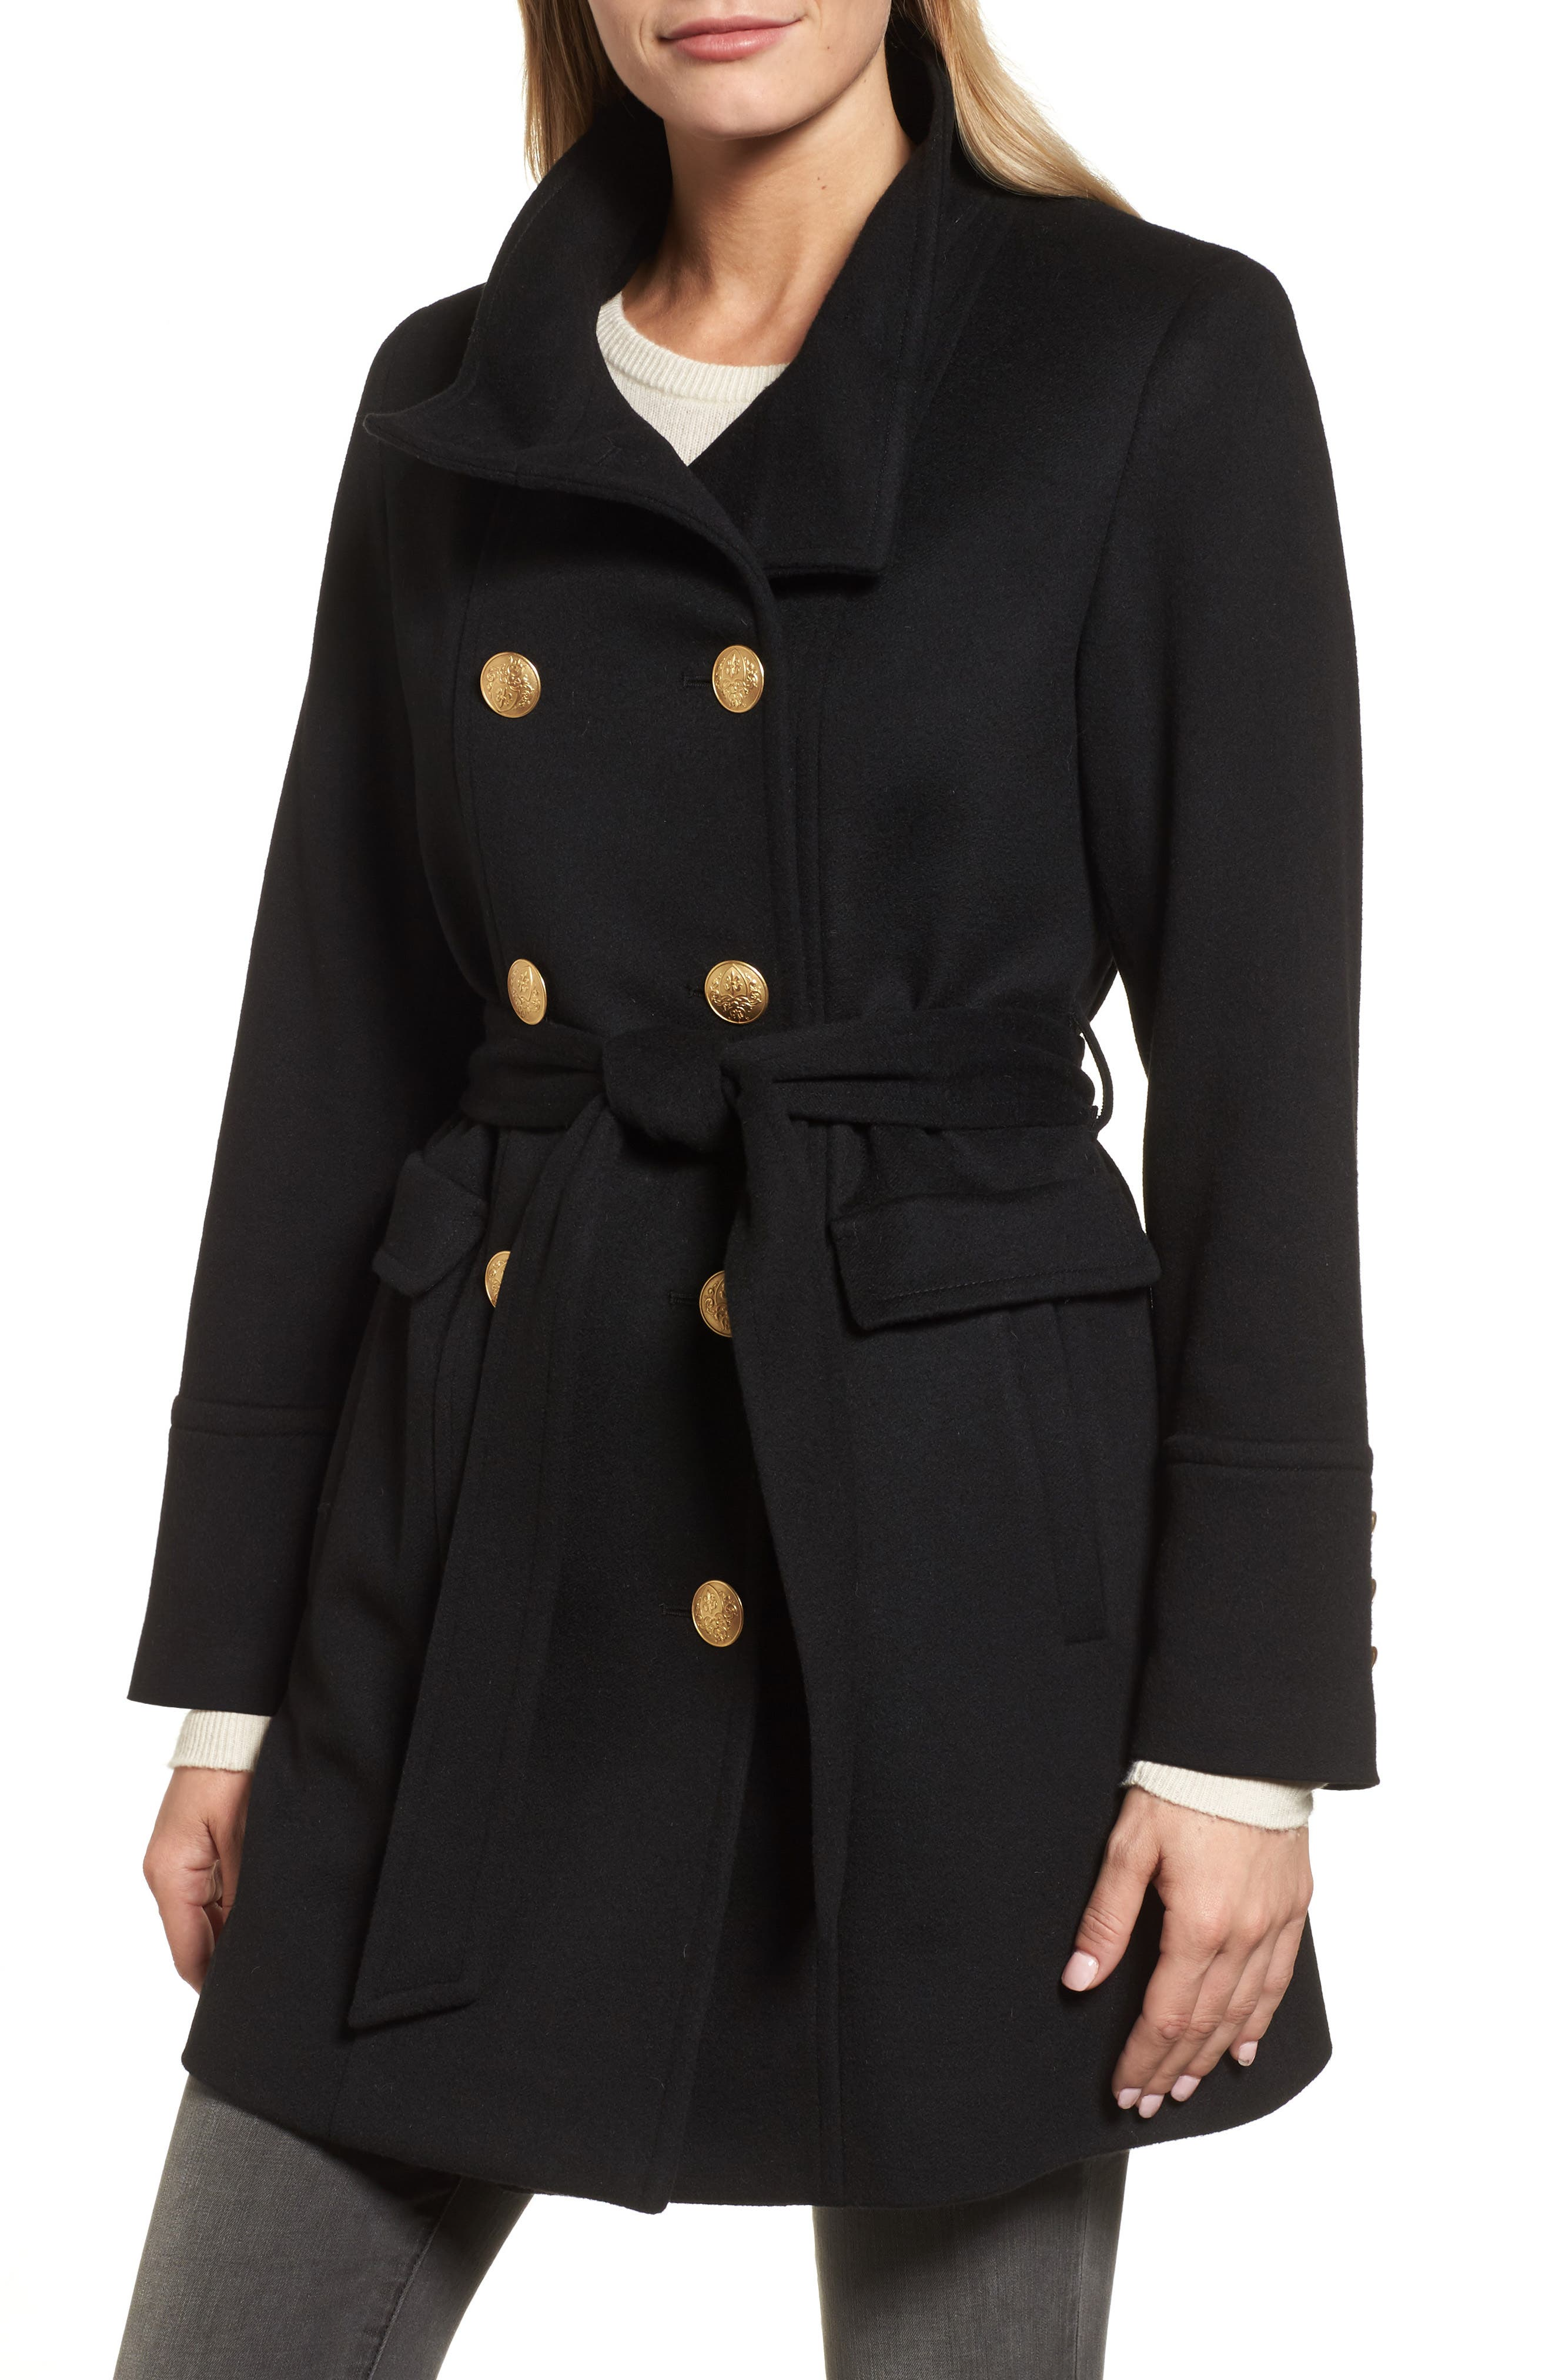 Sofia Cashmere Wool & Cashmere Blend Military Coat